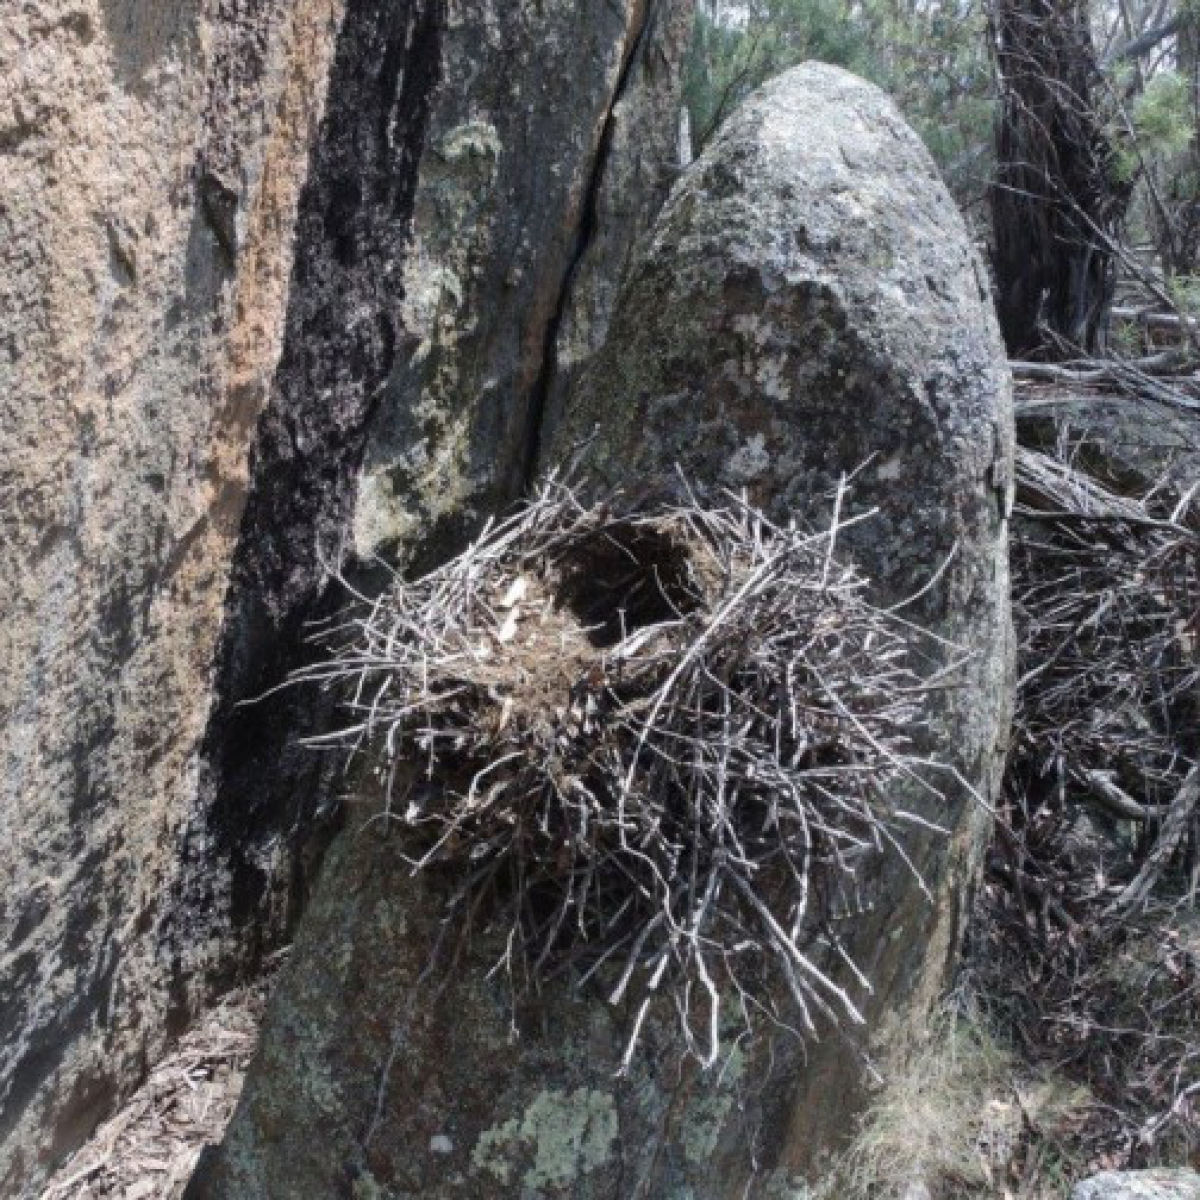 525 Superb Lyrebird - nest